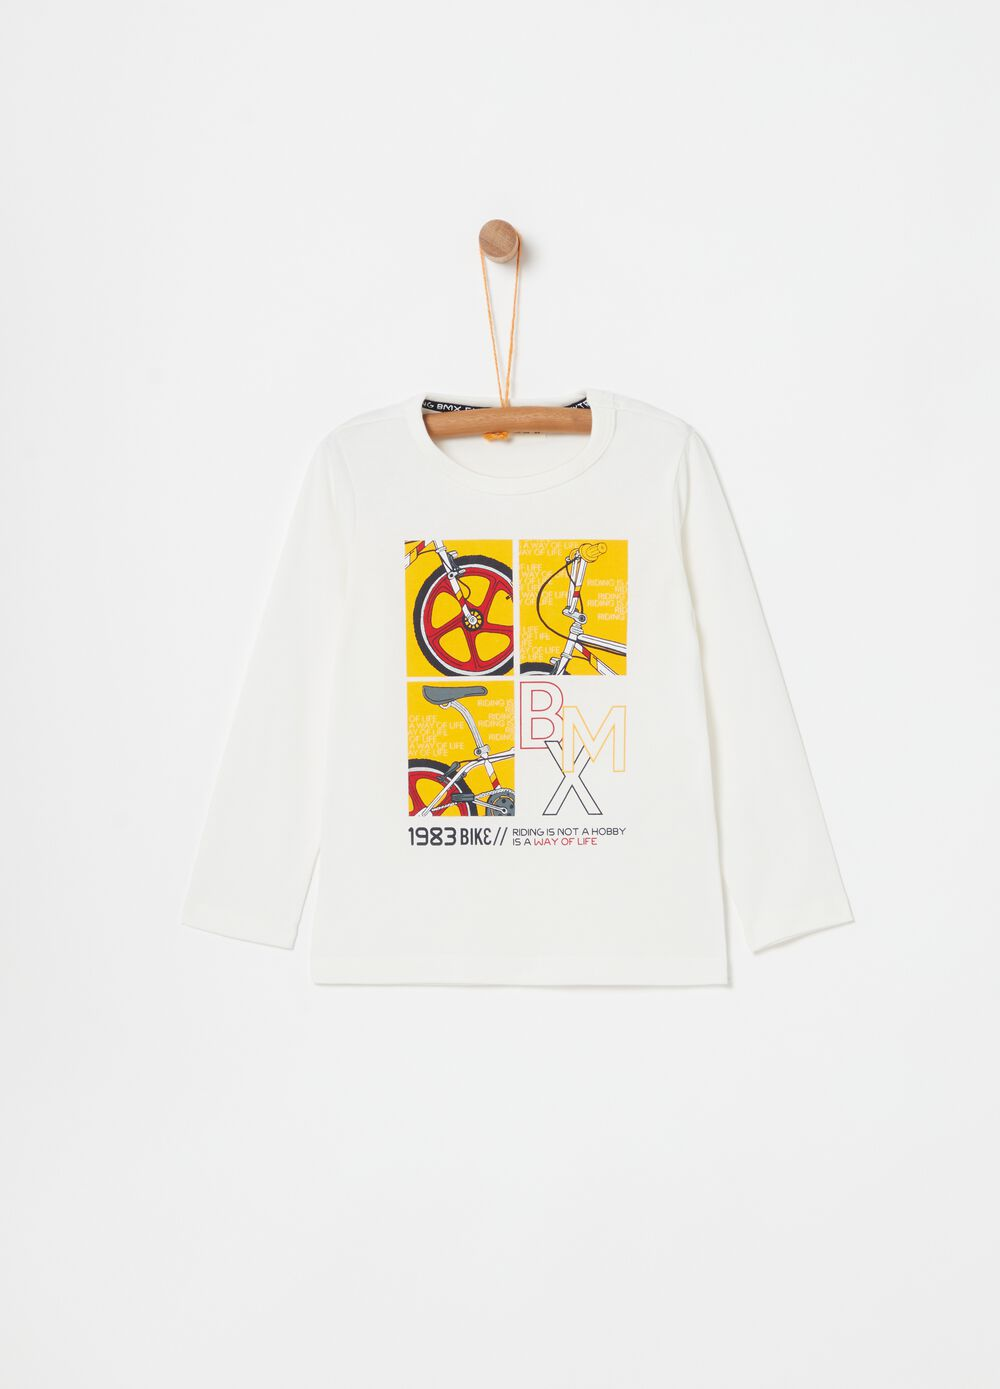 100% cotton T-shirt with bicycle print